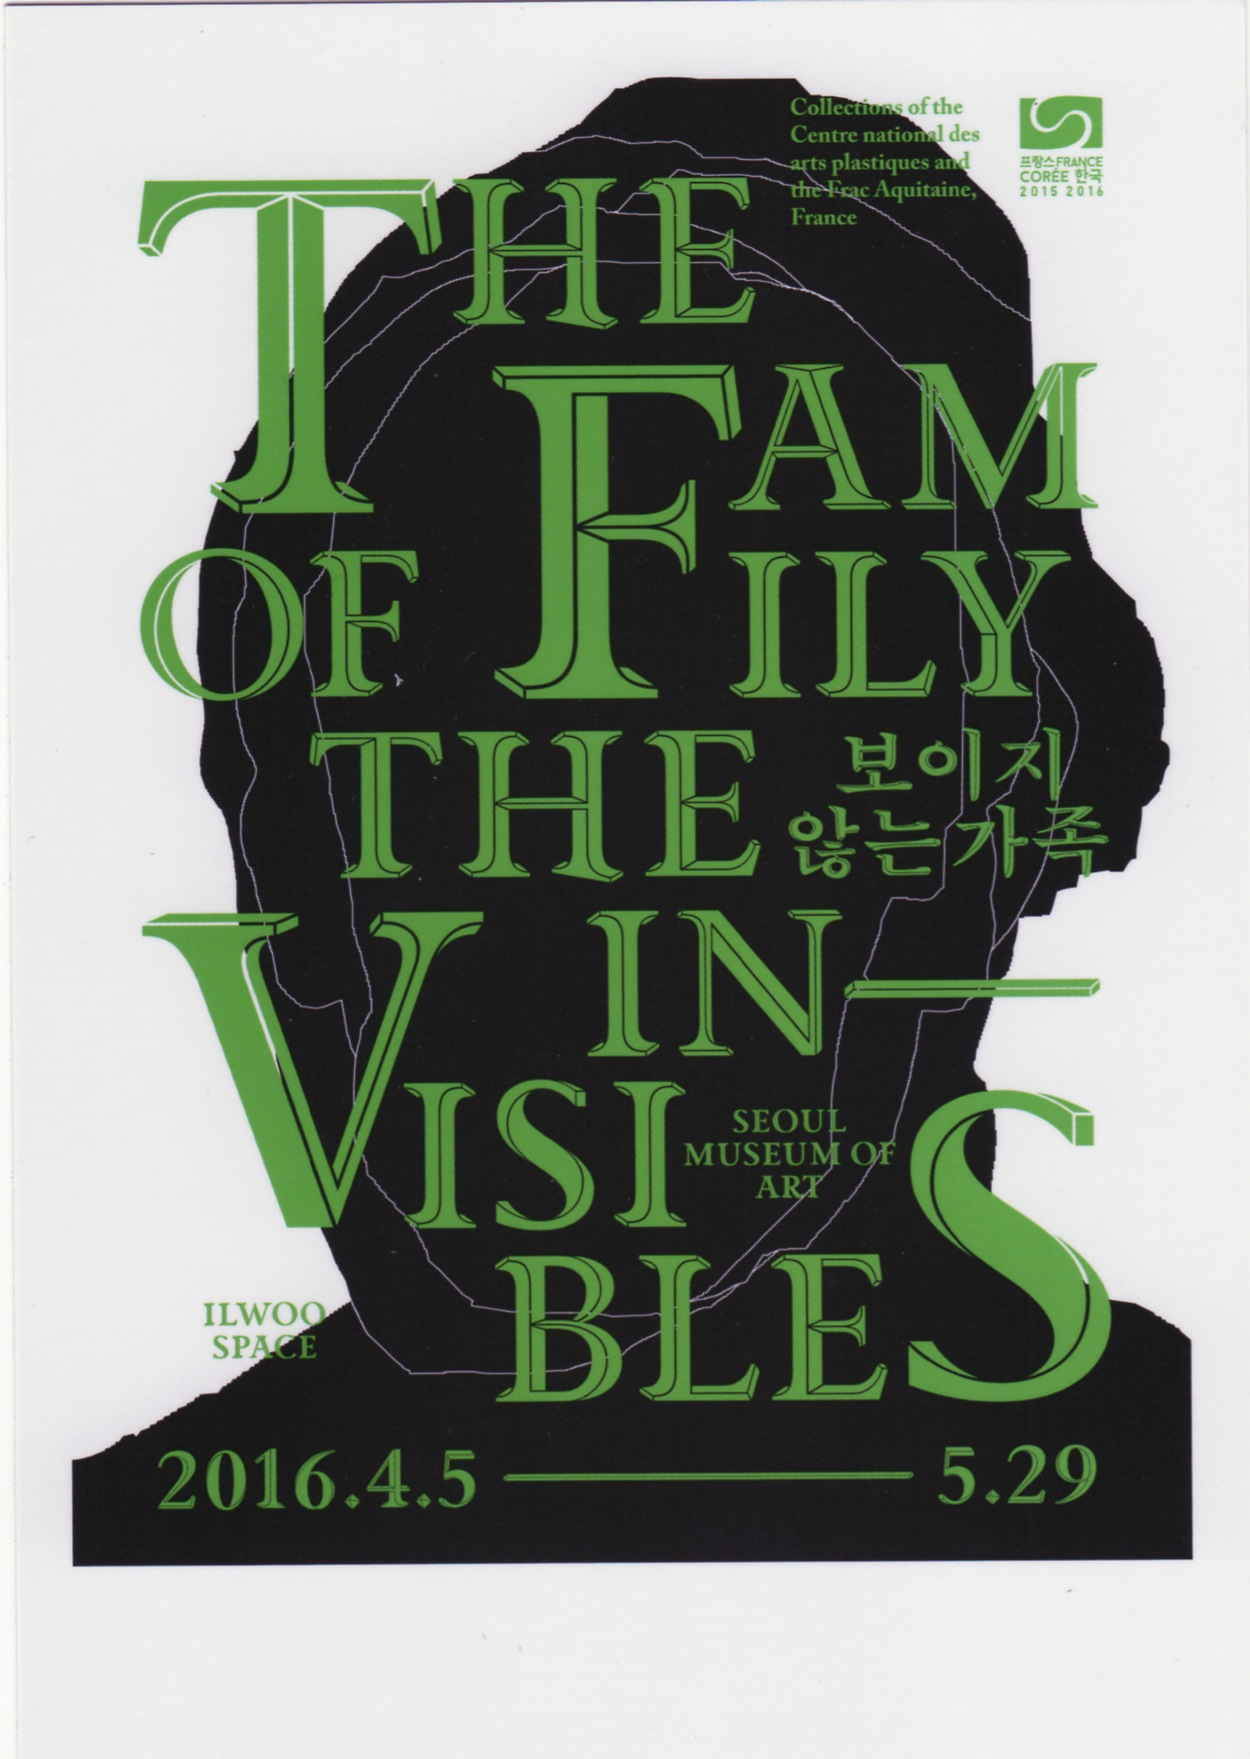 jean-rault-participation-a-the-family-of-the-invisibles-seoul-coree-avril-mai-2016